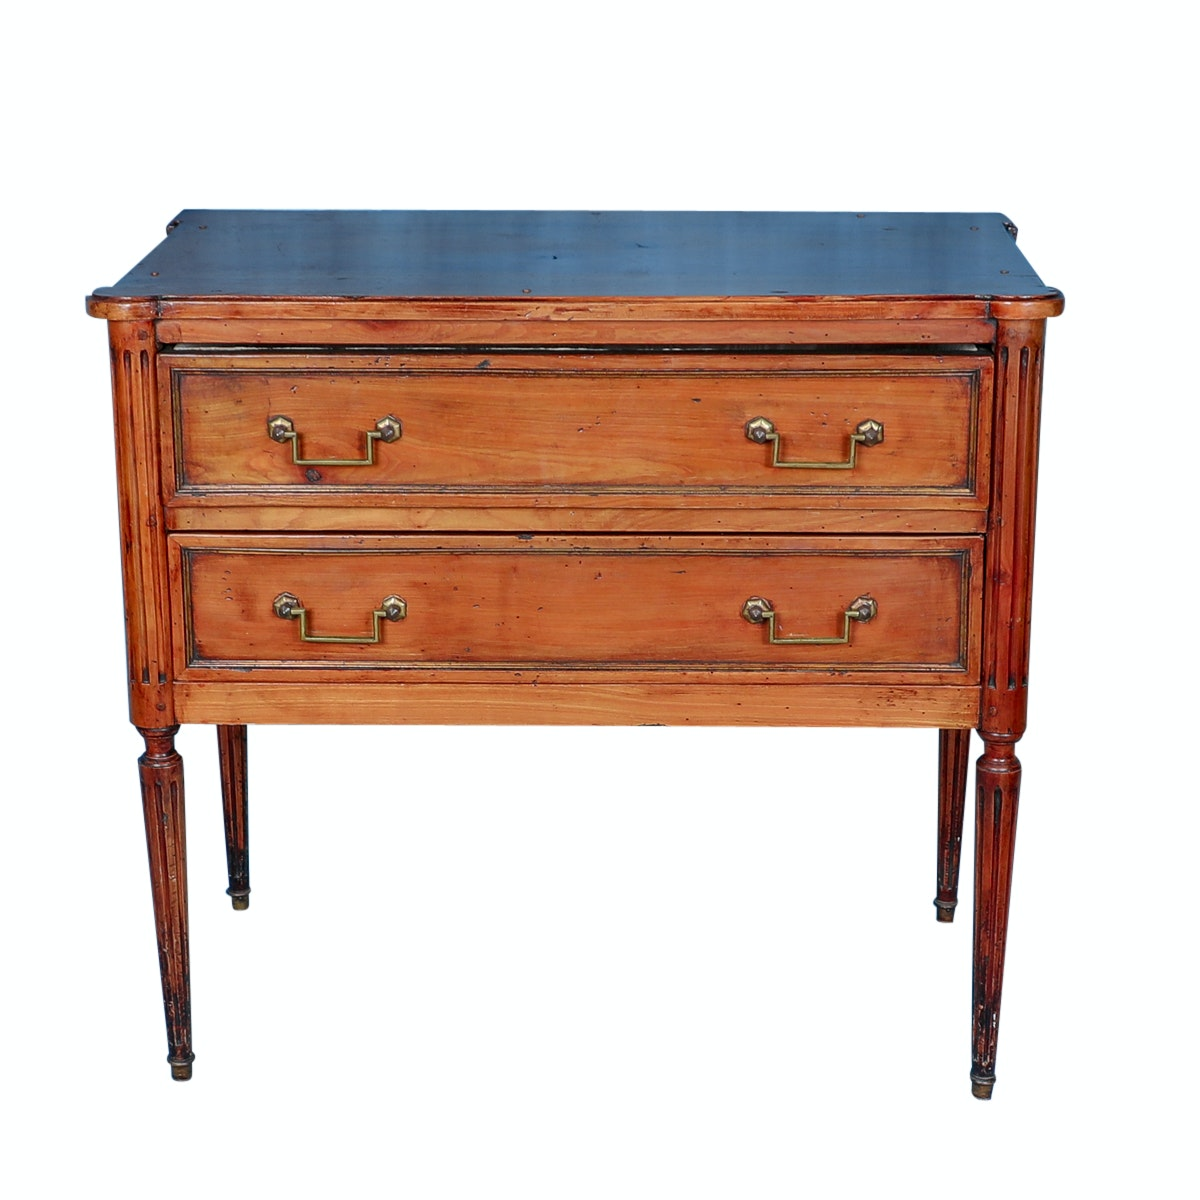 Antique Louis XVI Style Fruitwood Commode